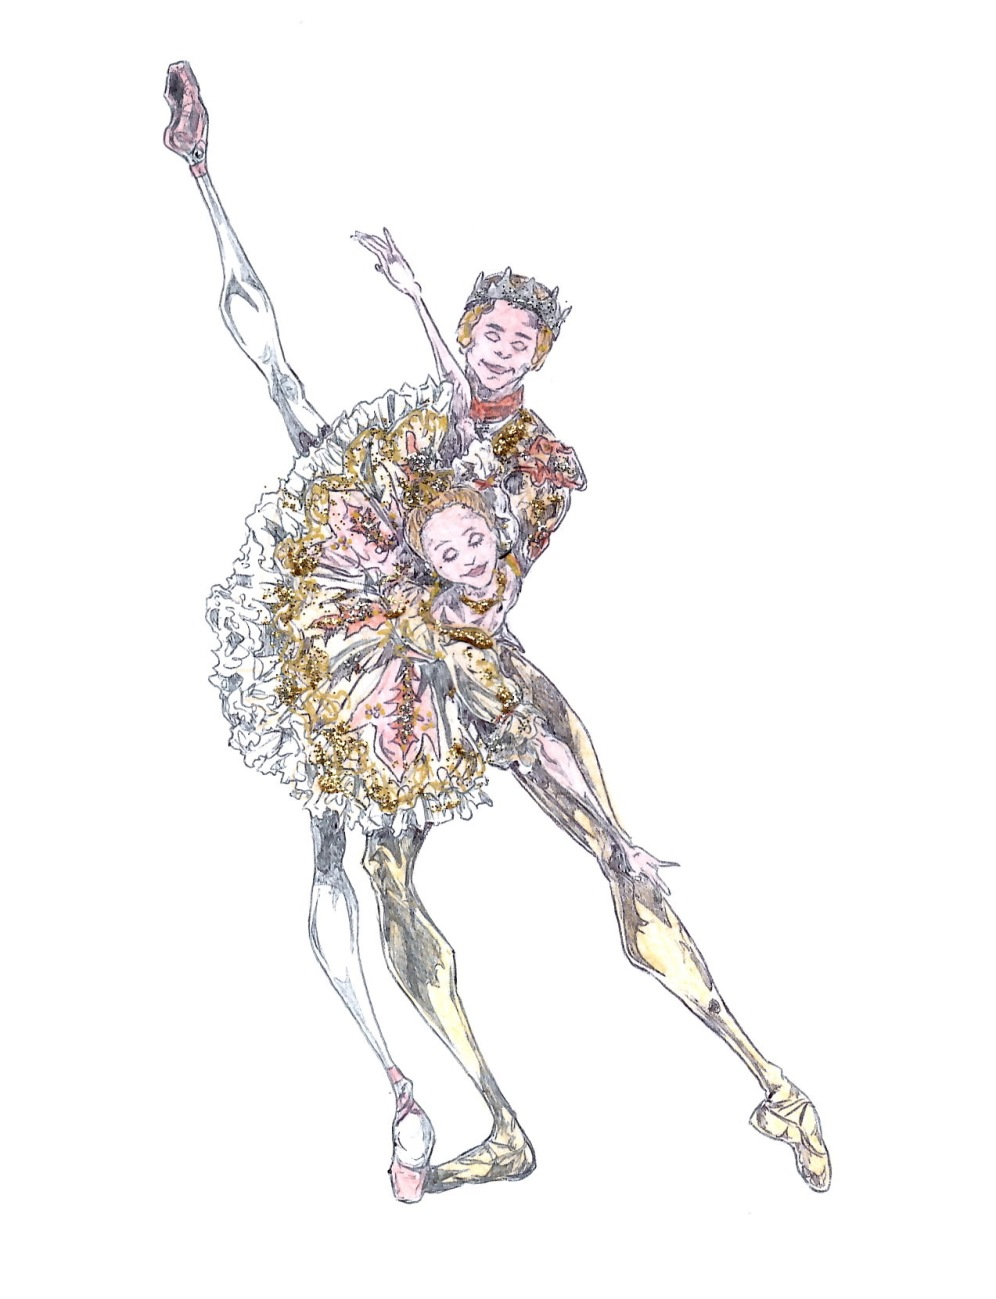 SUGAR PLUM FAIRY AND PRINCE PAS DE DEUX, Act II: after Marianela Nunez and Thiago Soares